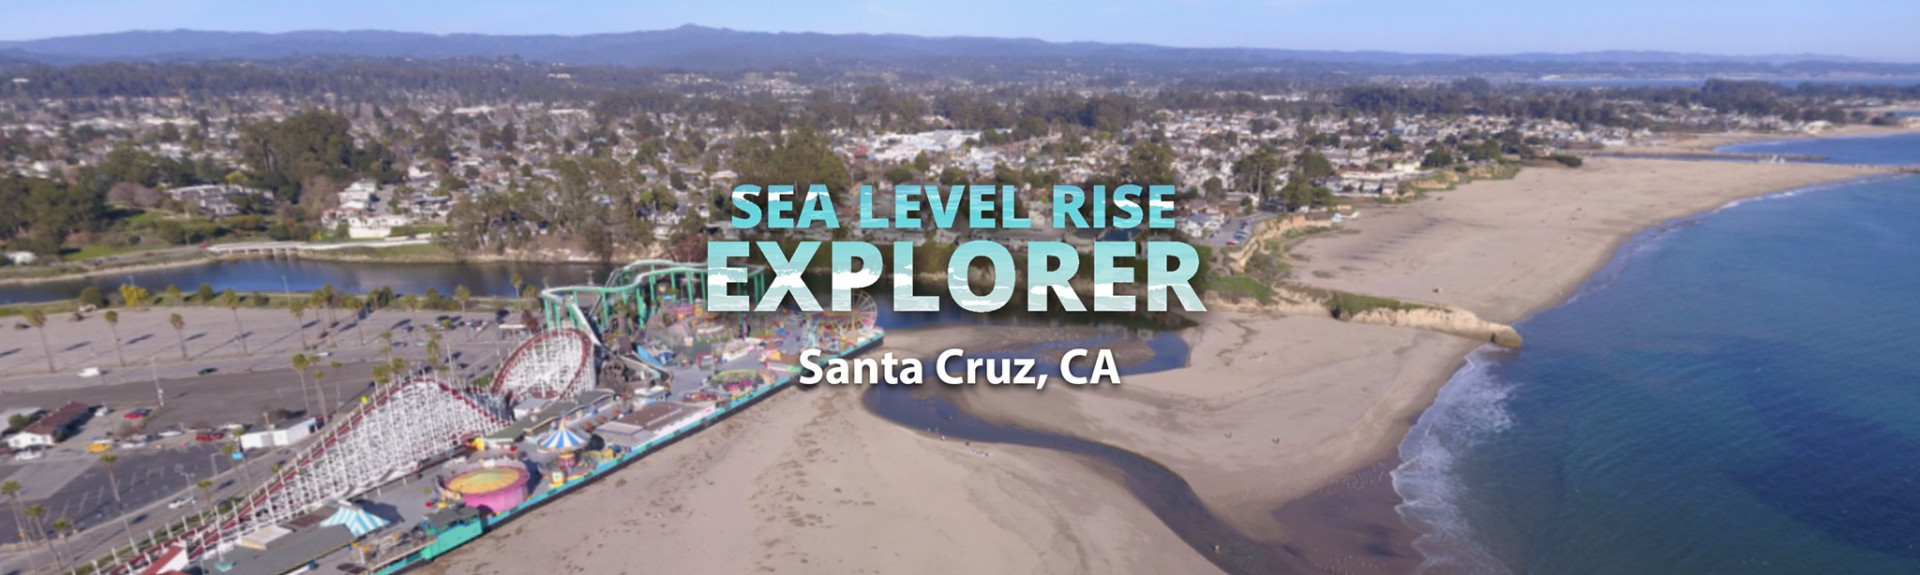 Sea Level Rise Explorer: Santa Cruz